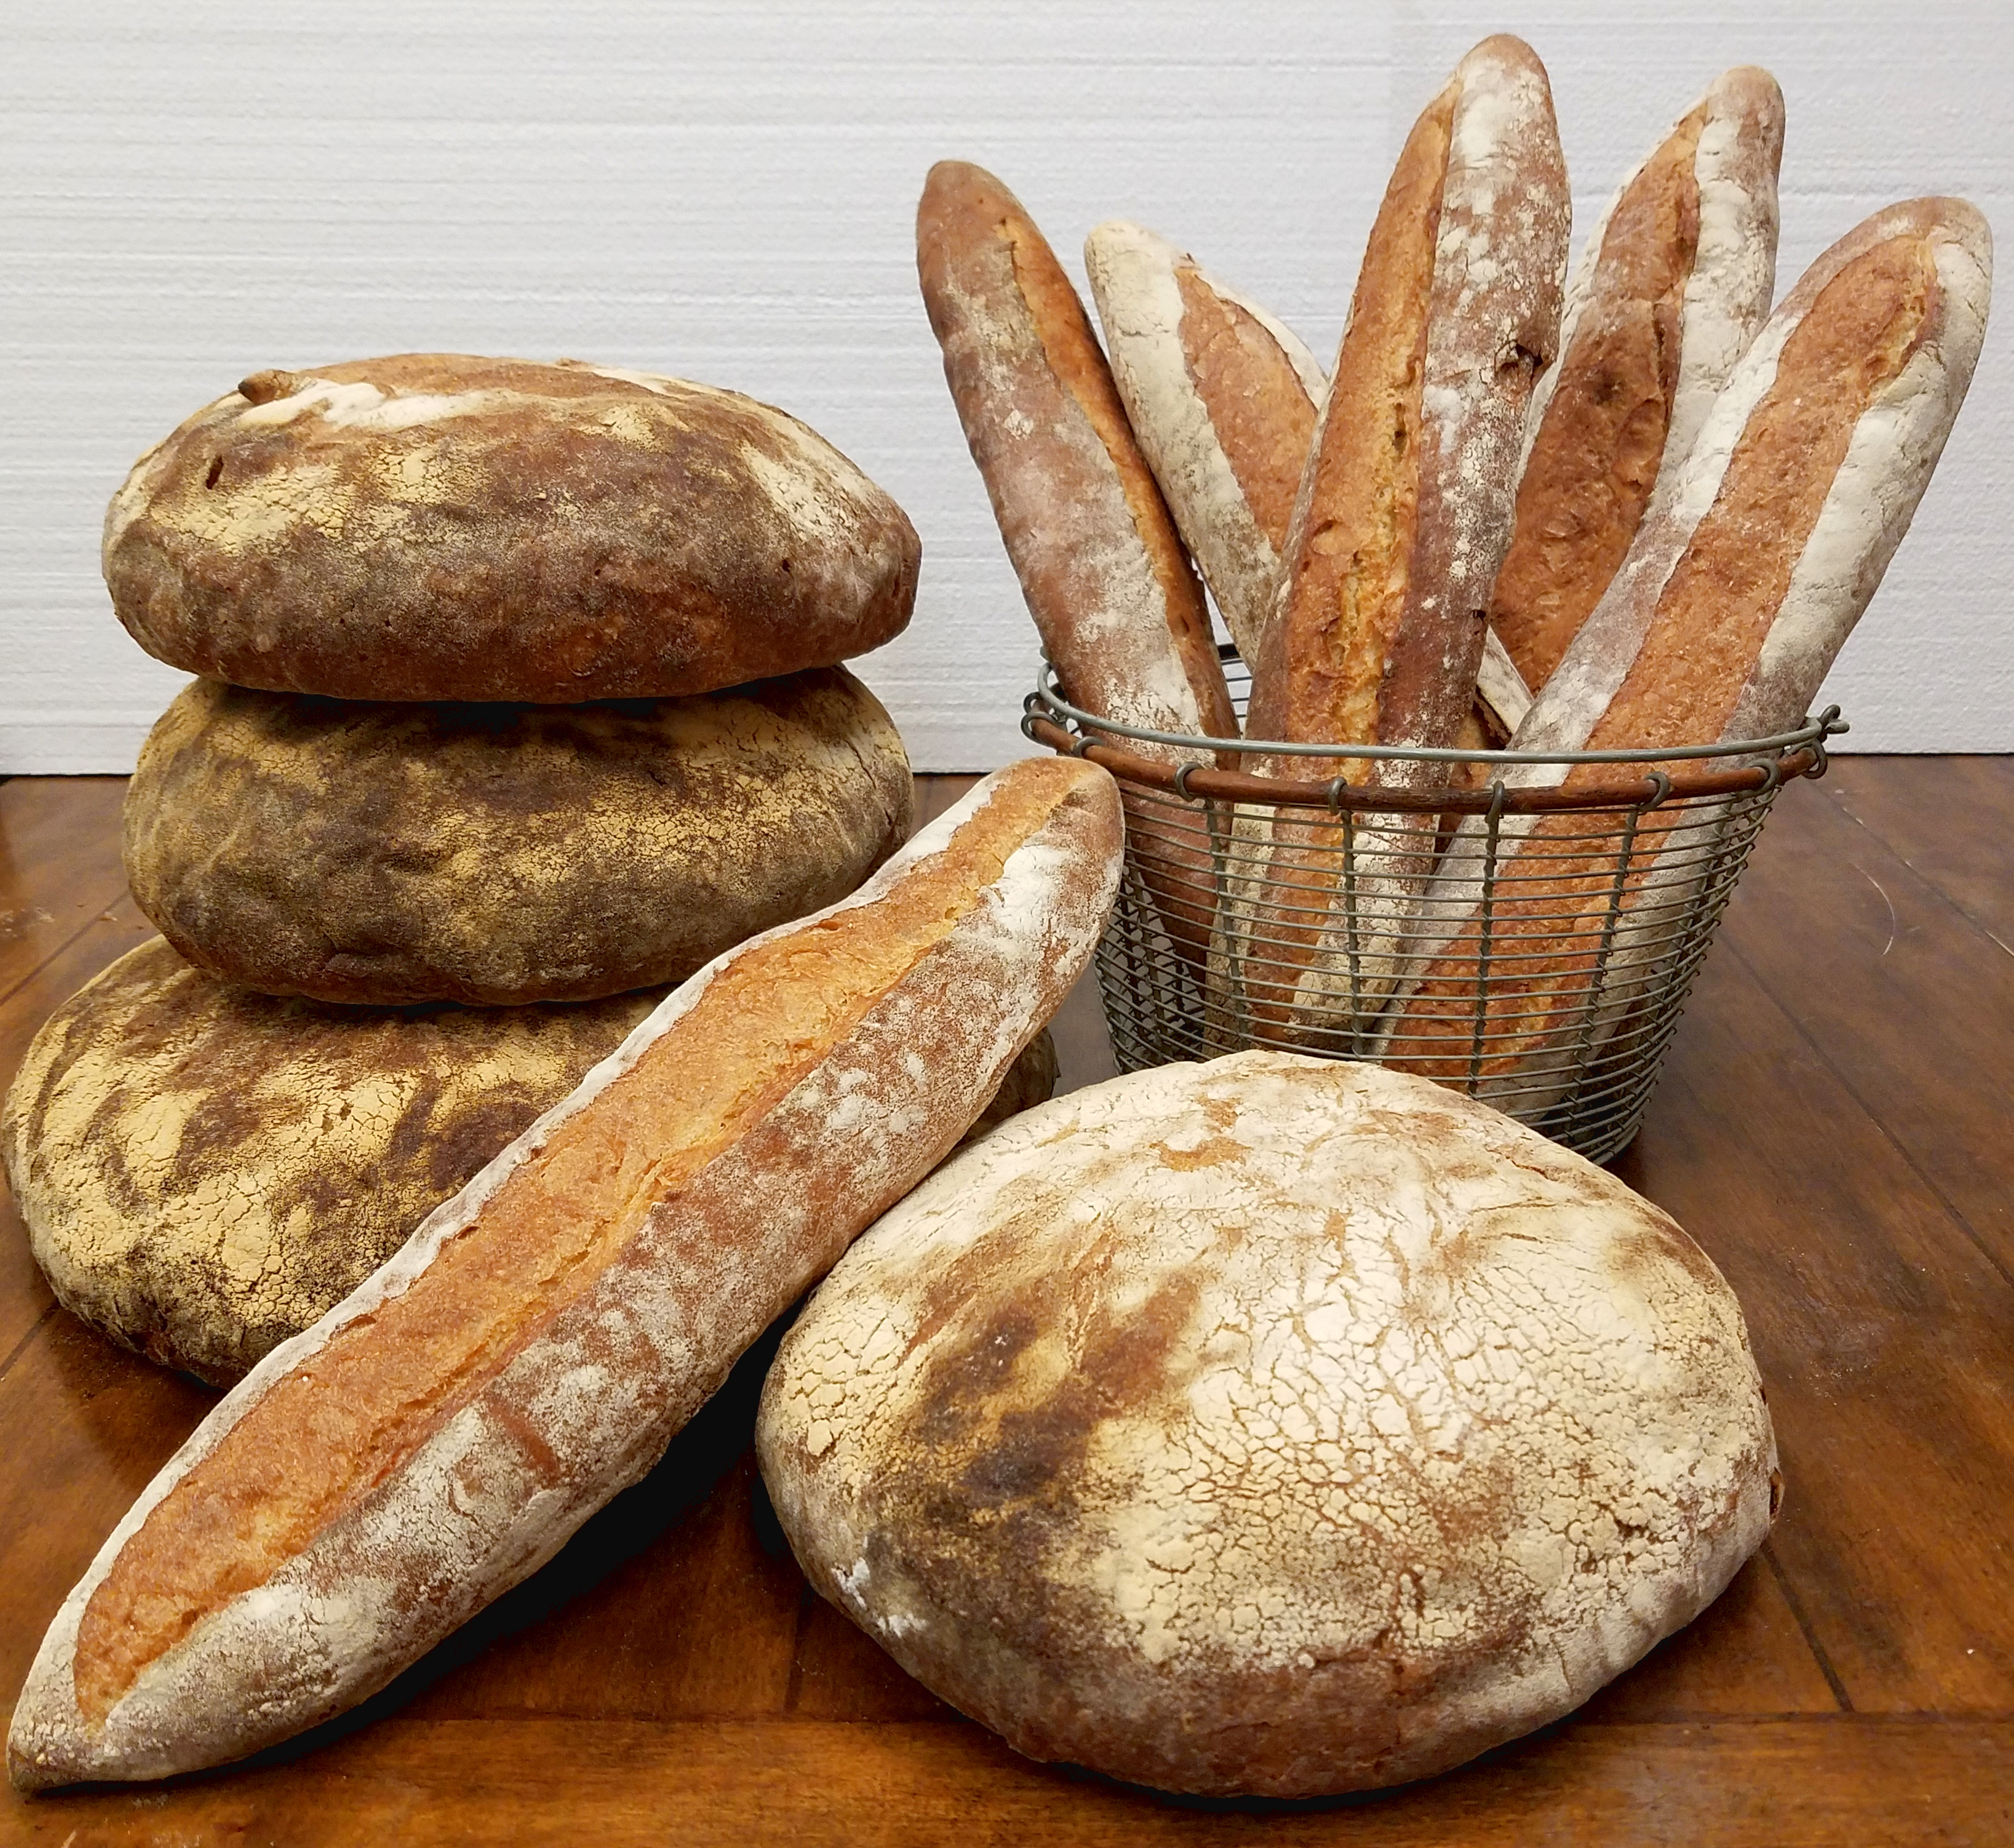 Convenience clean label artisan top instore bakery trends